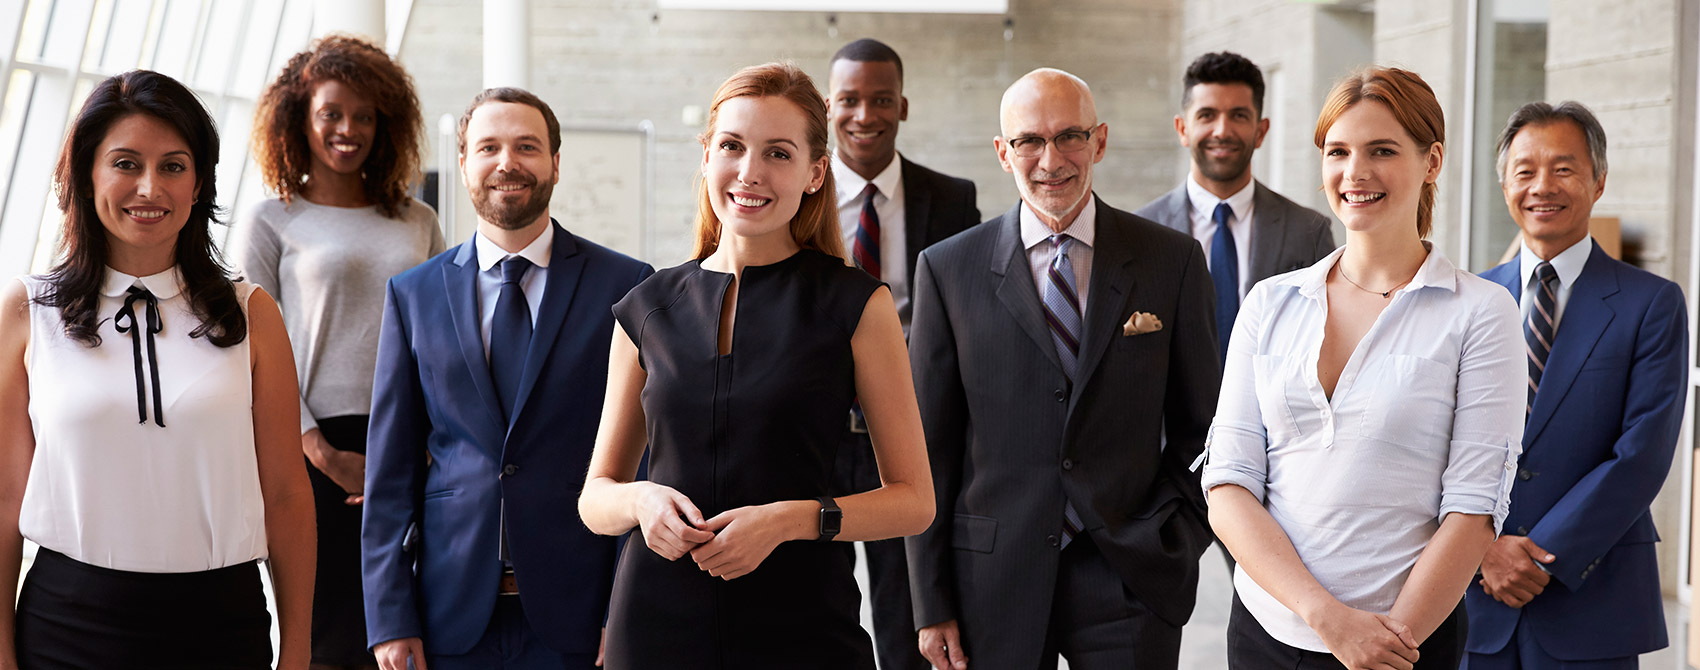 Diverse group of communication professionals wearing business casual or suits pose together.